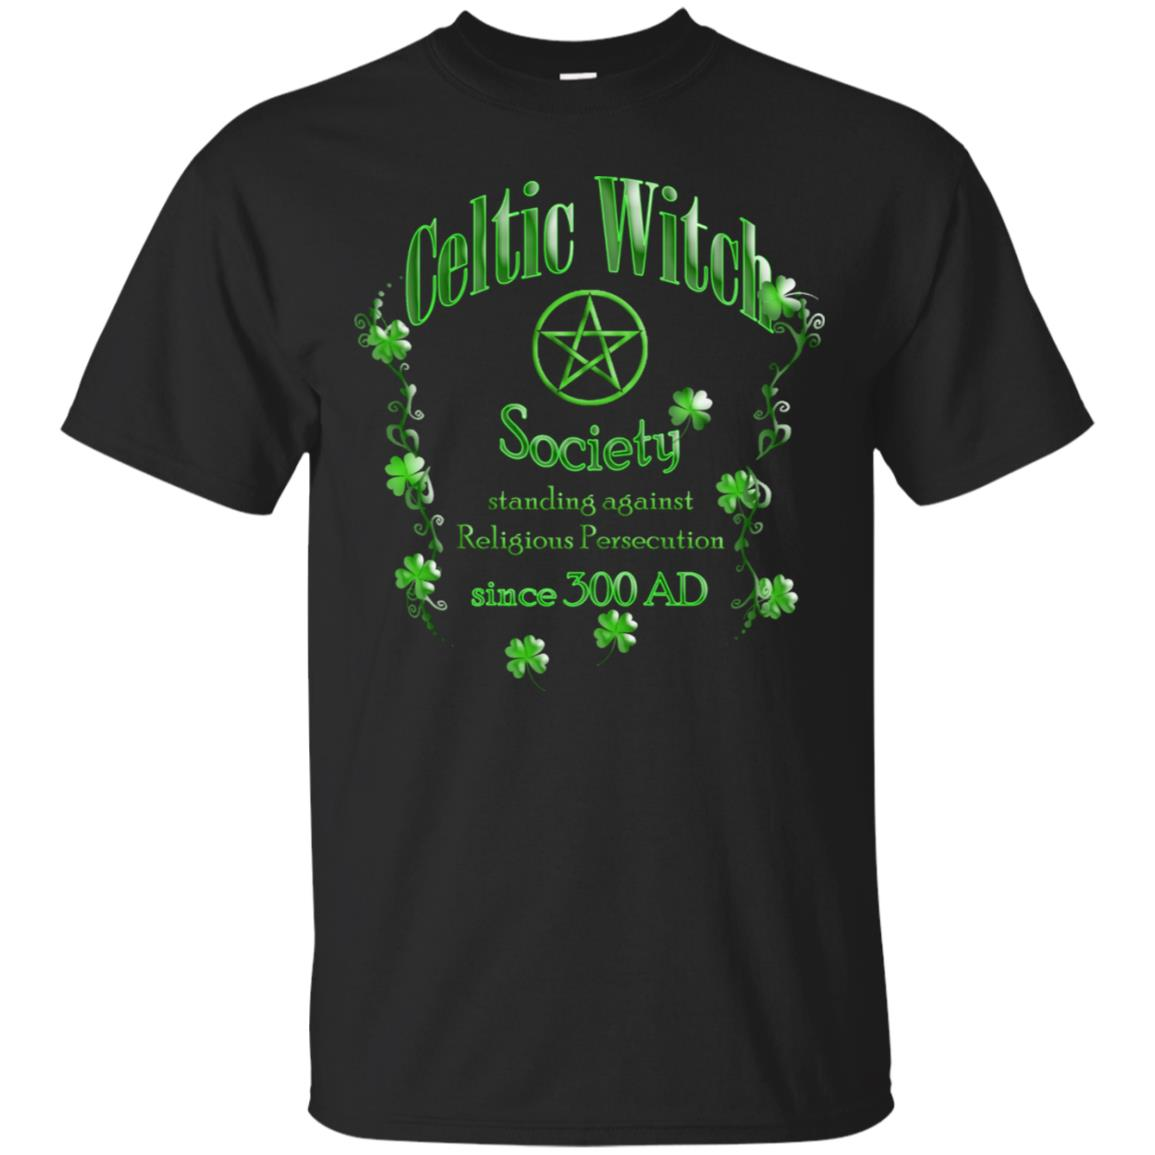 Celtic Witch Tshirt - Wiccan T-shirts and Pagan T-Shirts 99promocode